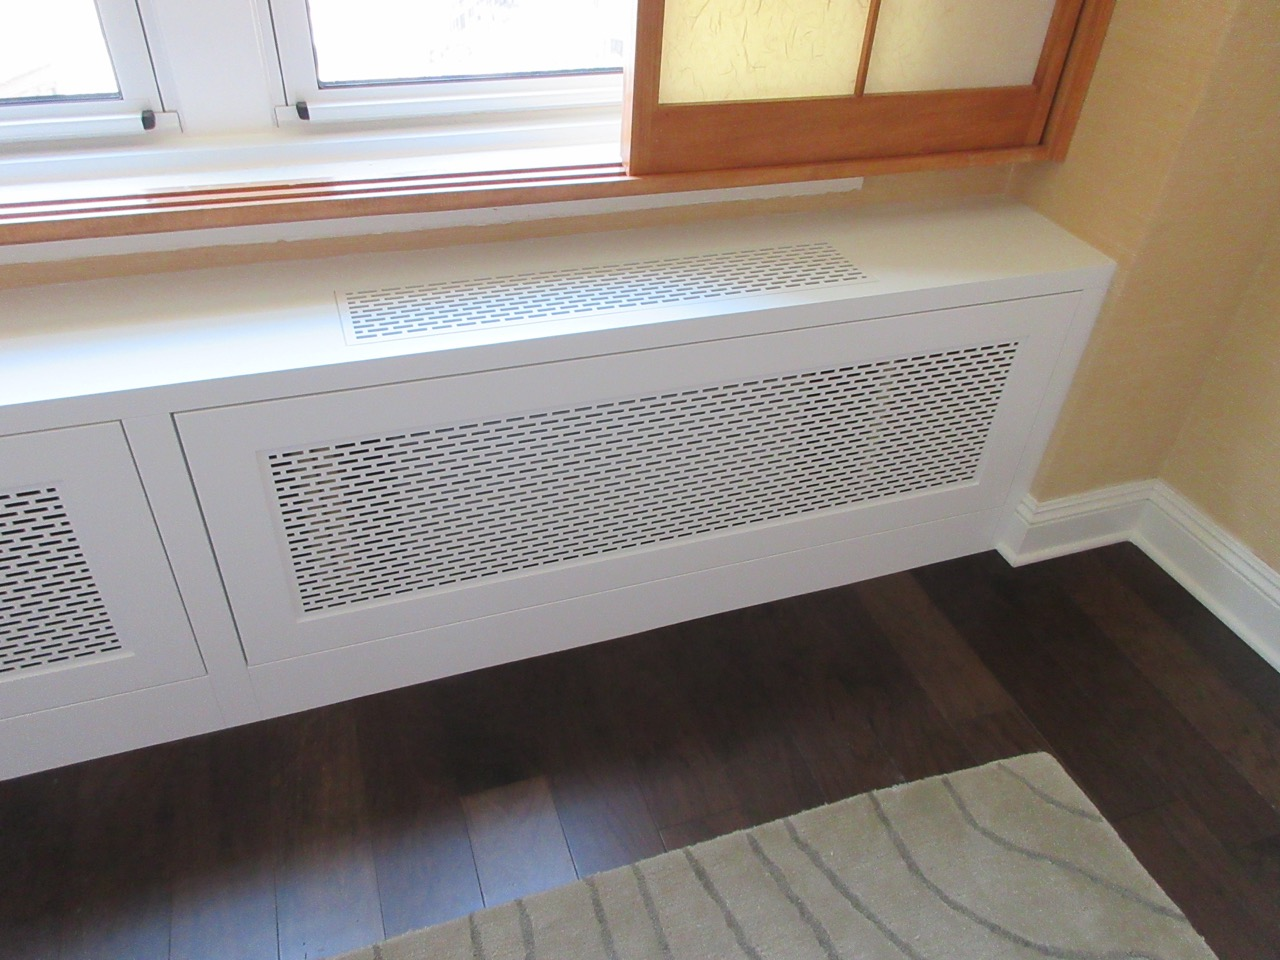 artistry in architectural grillesadvanced arch grilles company